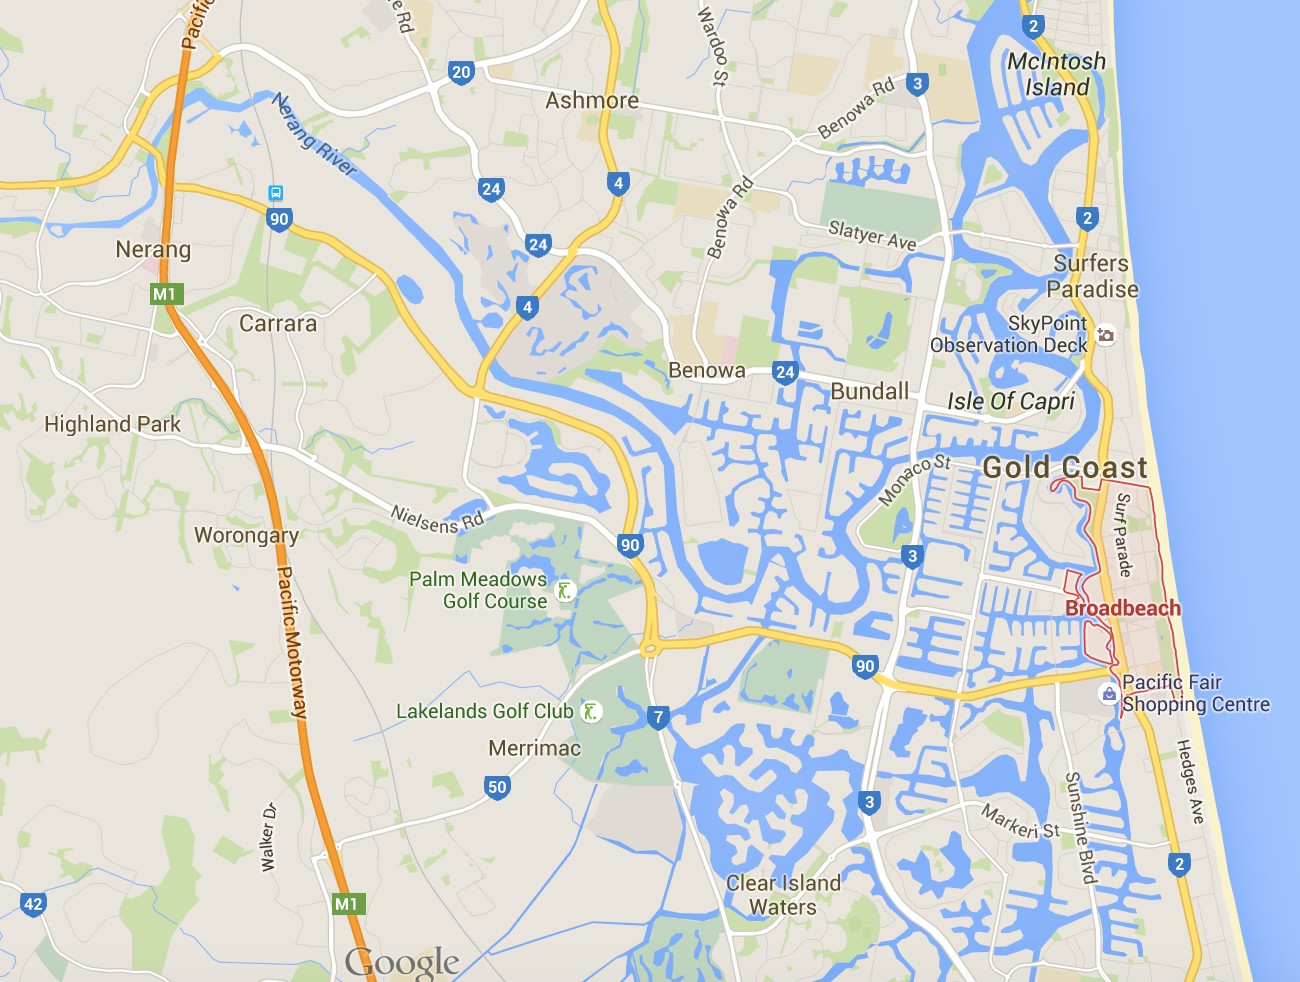 Need some Broadbeach lawnmowing? (Image credit: Google Maps)